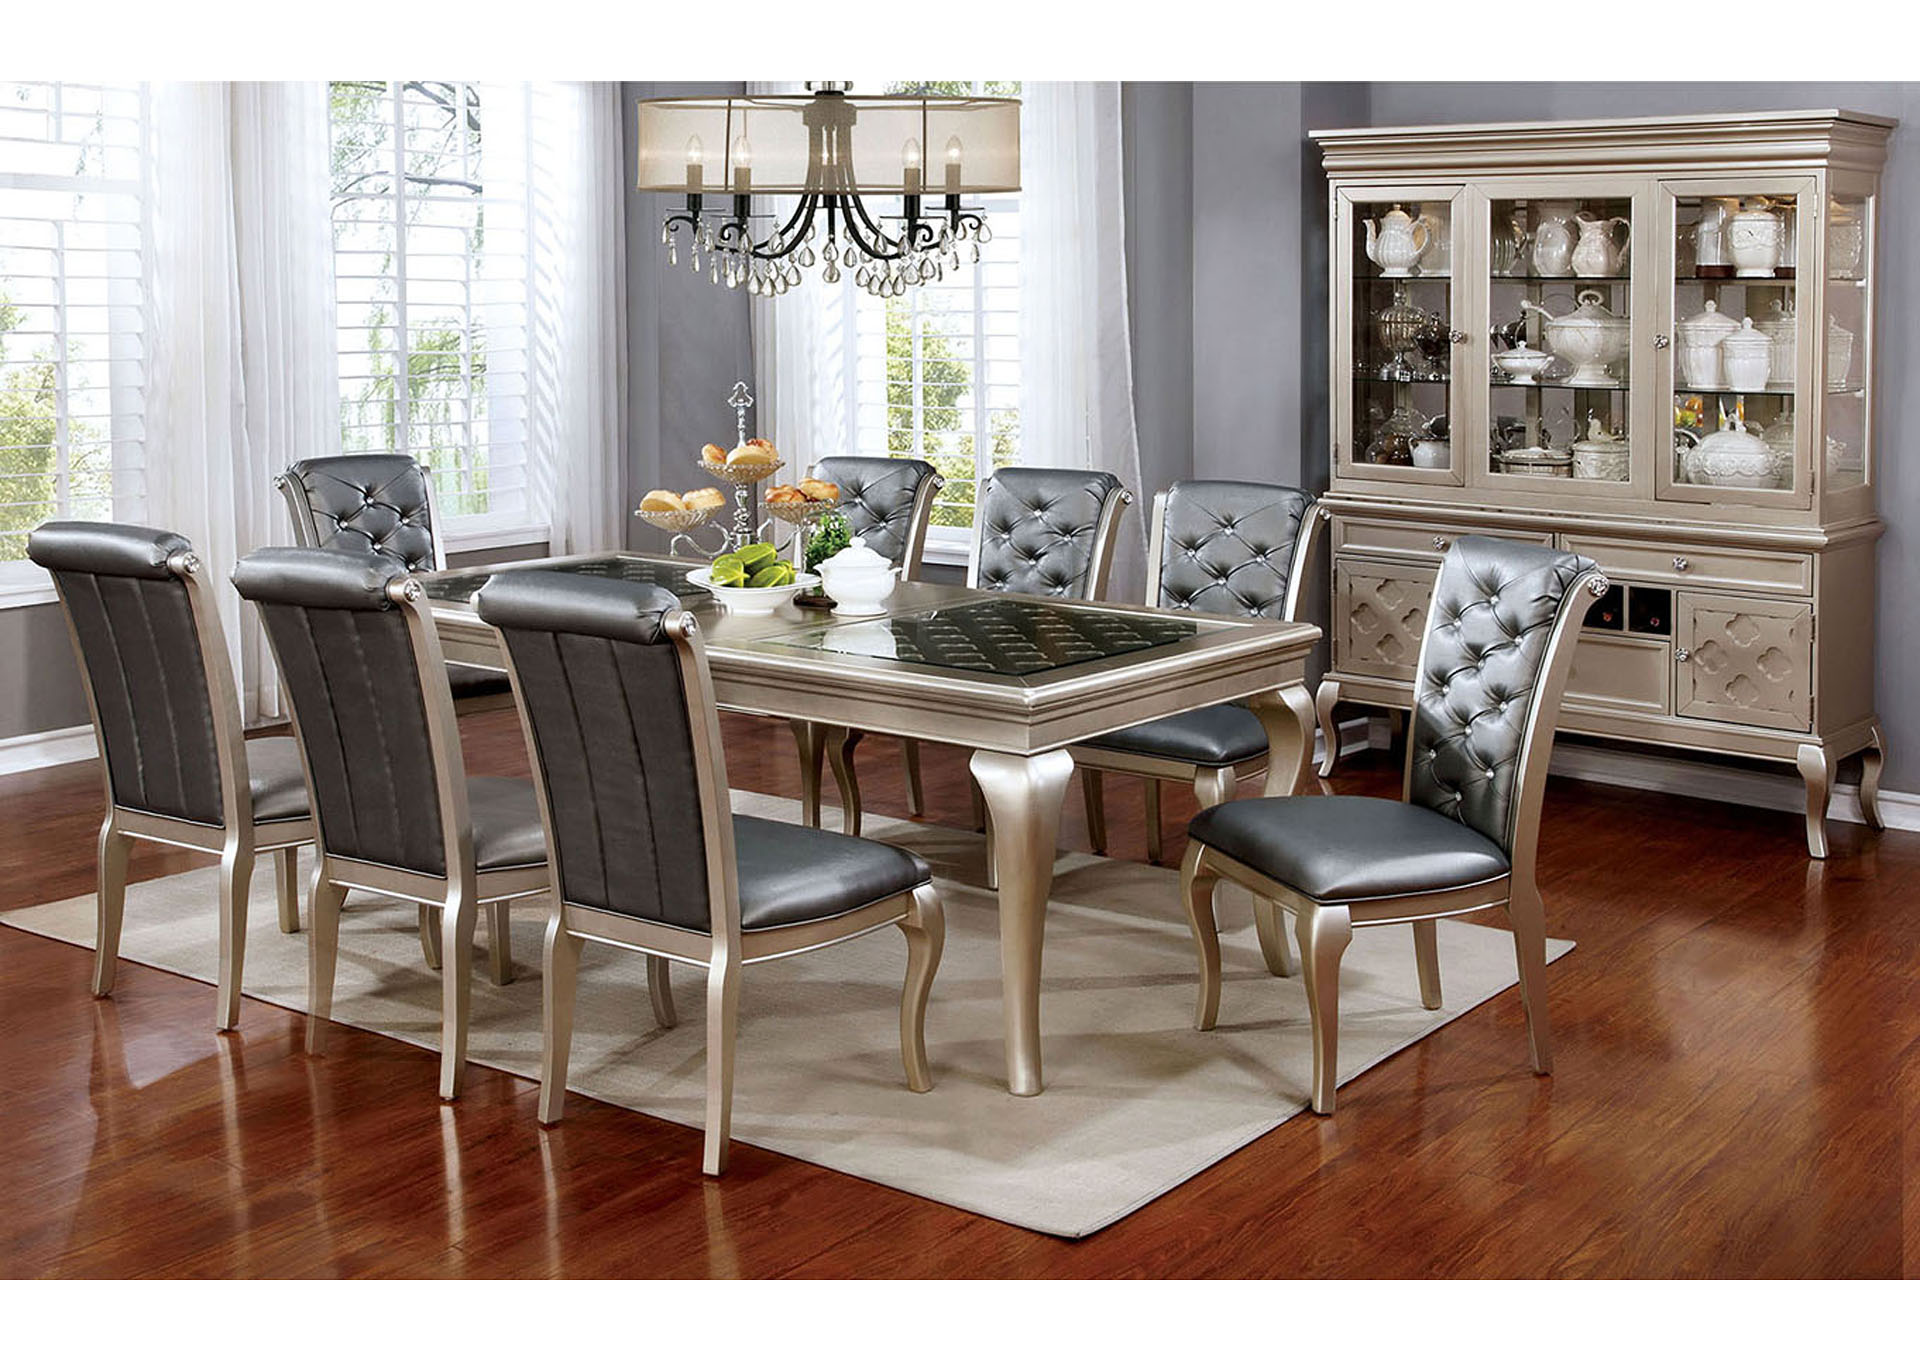 Furniture Ville - Bronx NY Amina Silver Dining Table w/4 Side Chairs